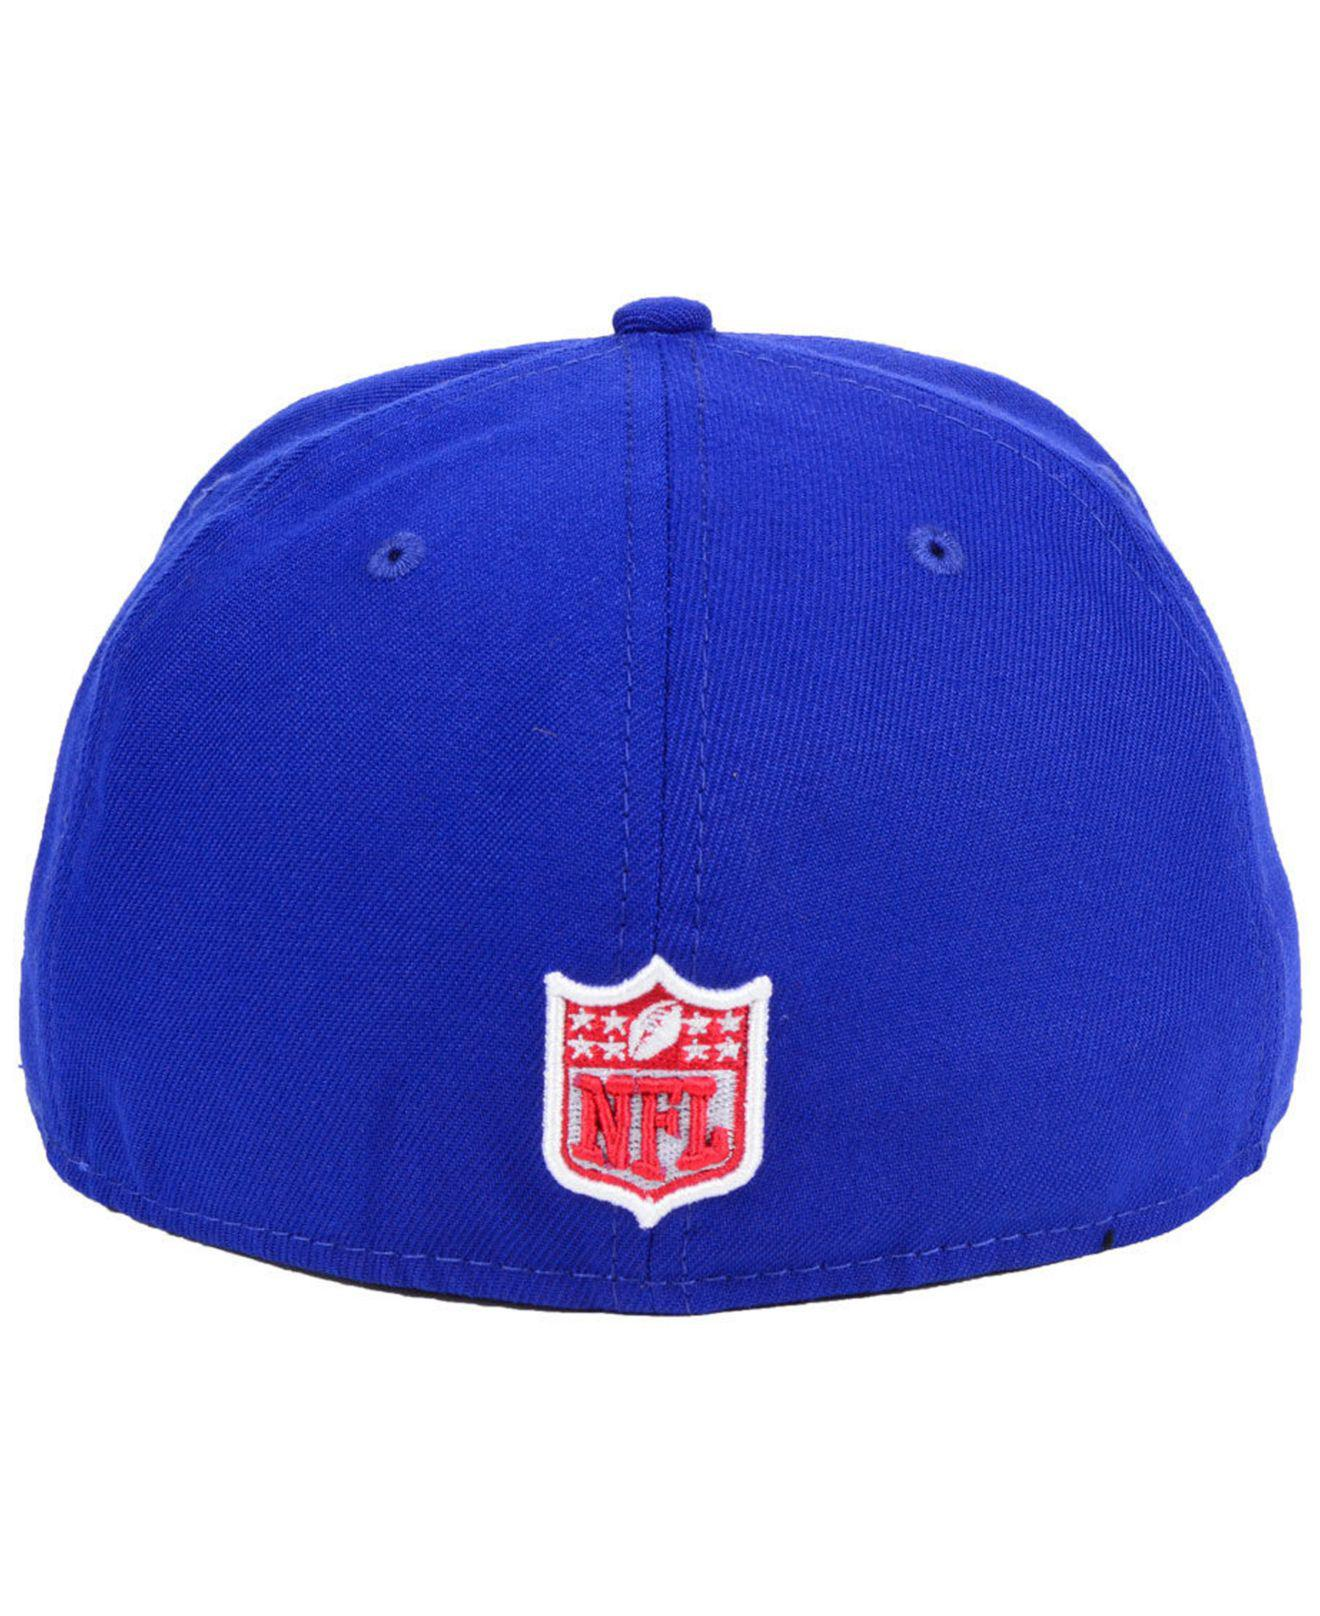 Lyst - Ktz New York Giants Team Basic 59fifty Fitted Cap in Blue for Men 27ab951a6